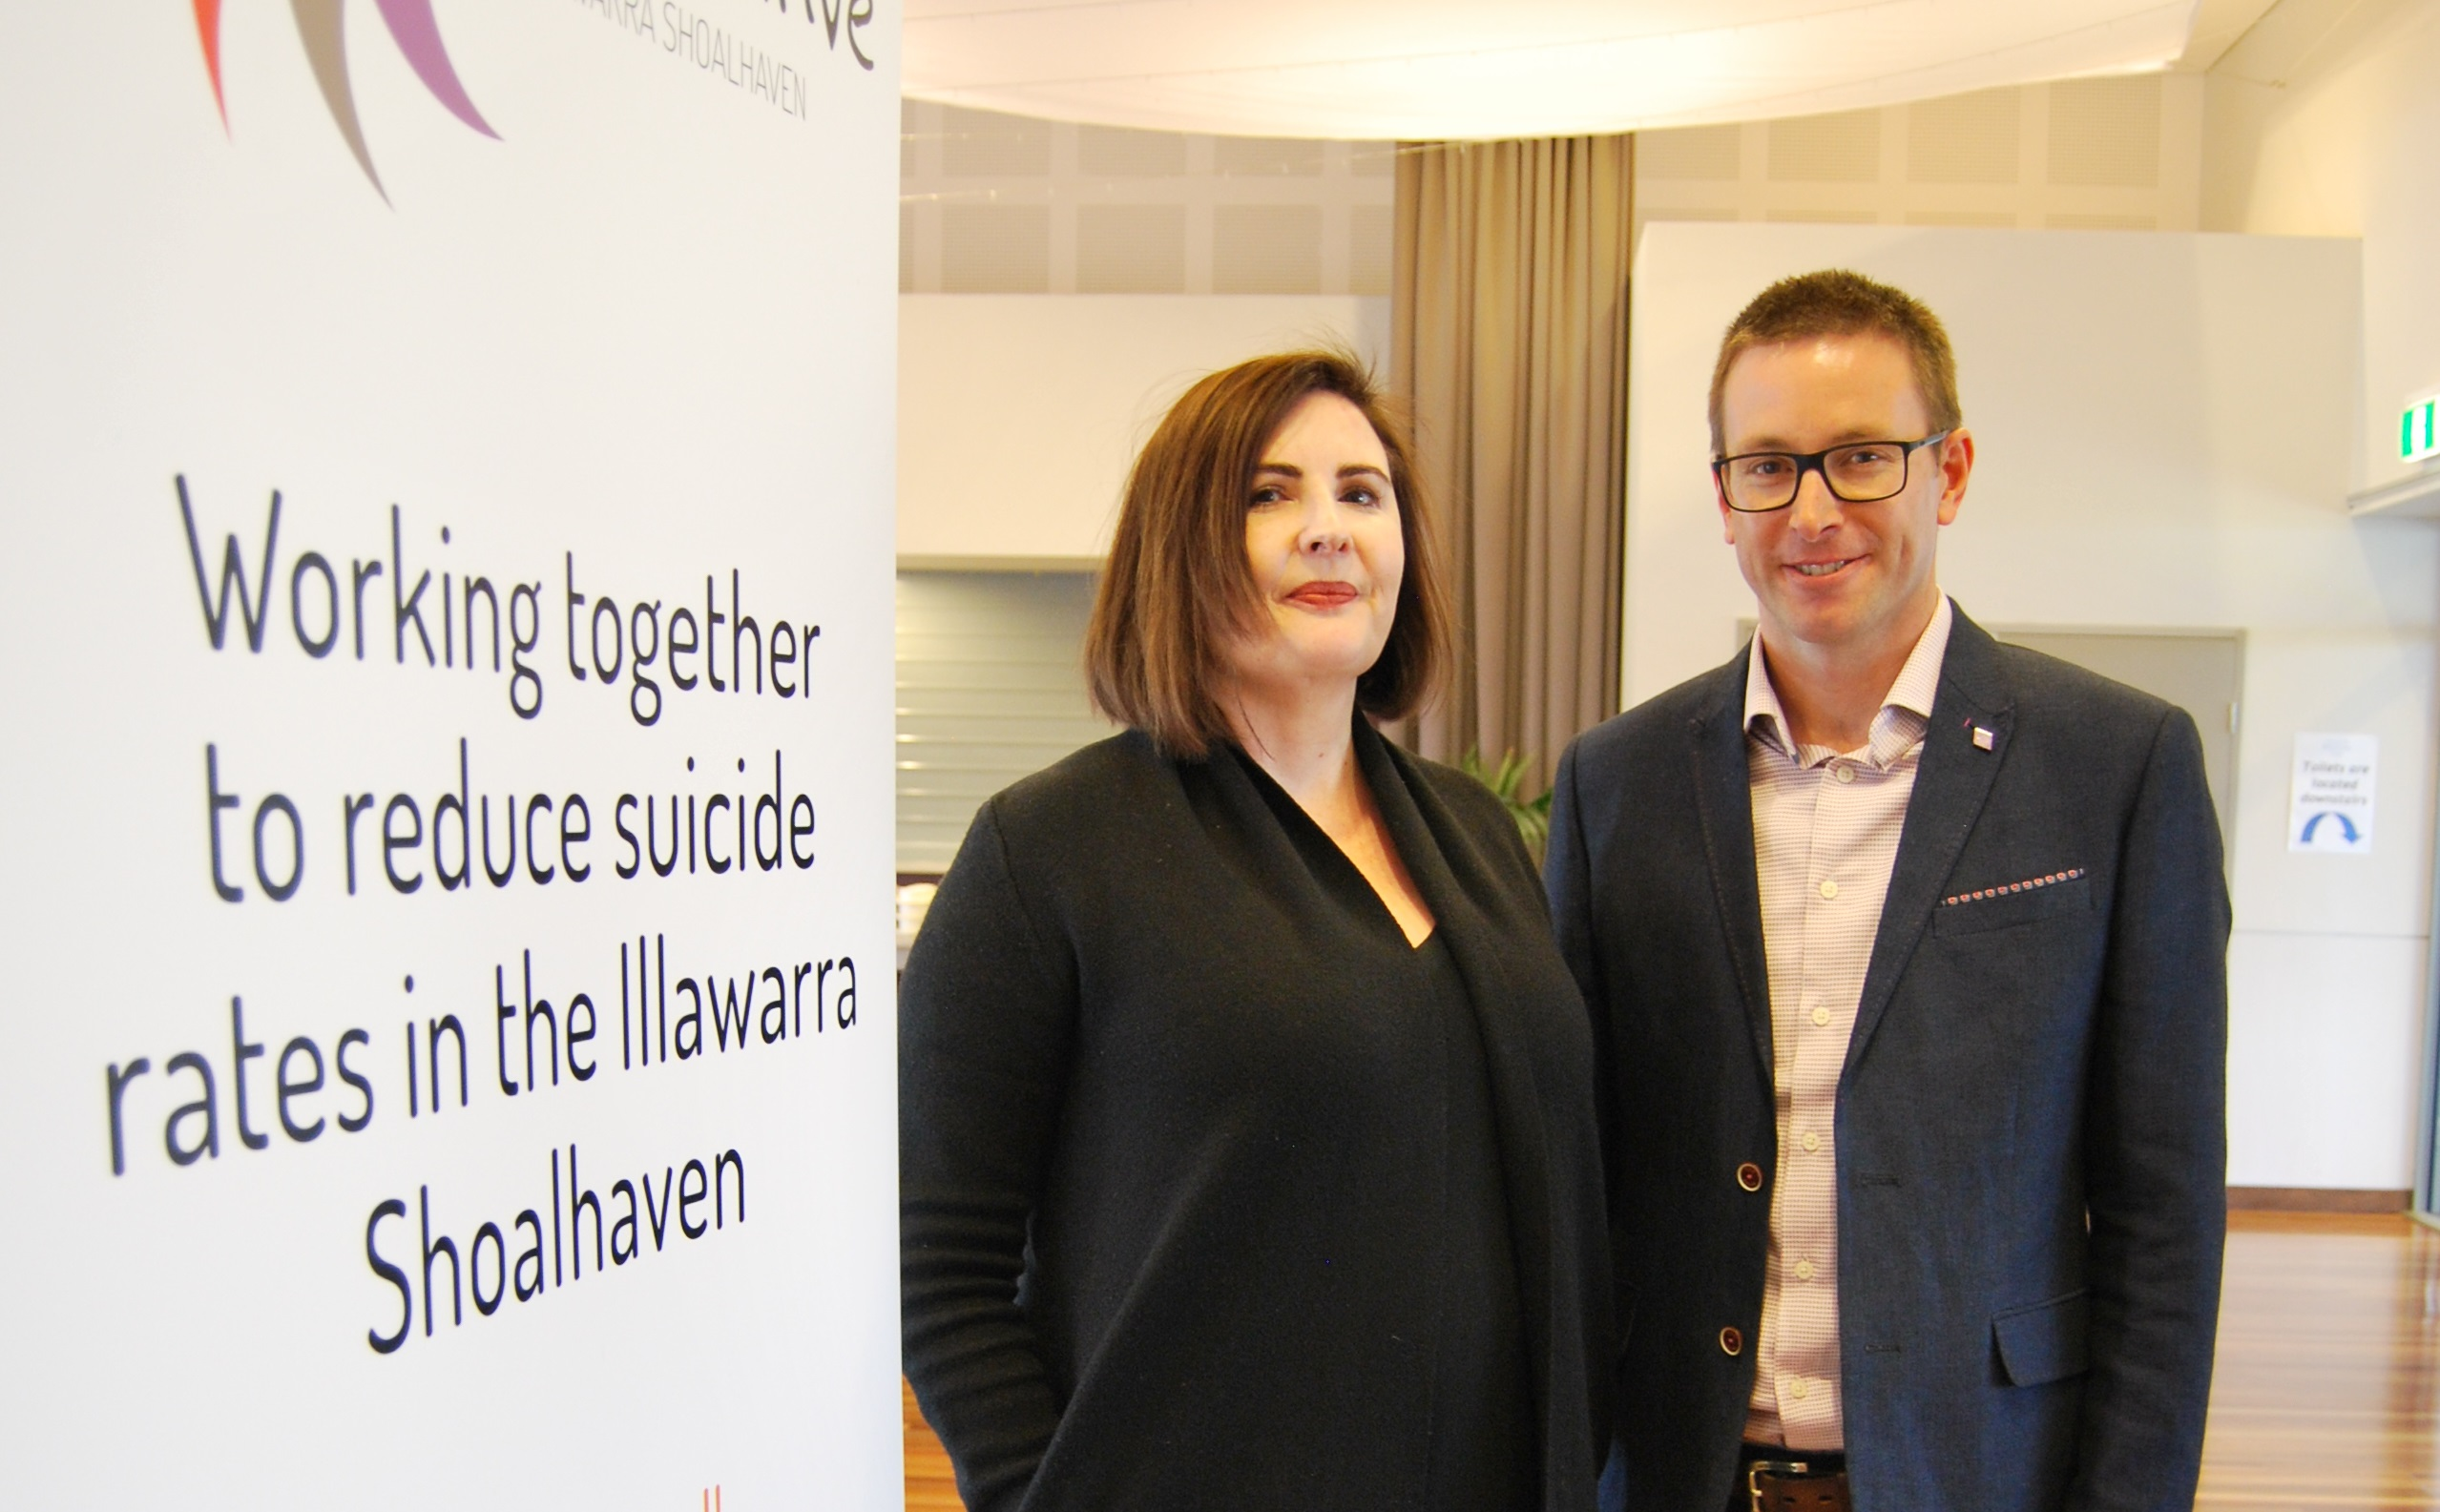 New approach to suicide prevention launched